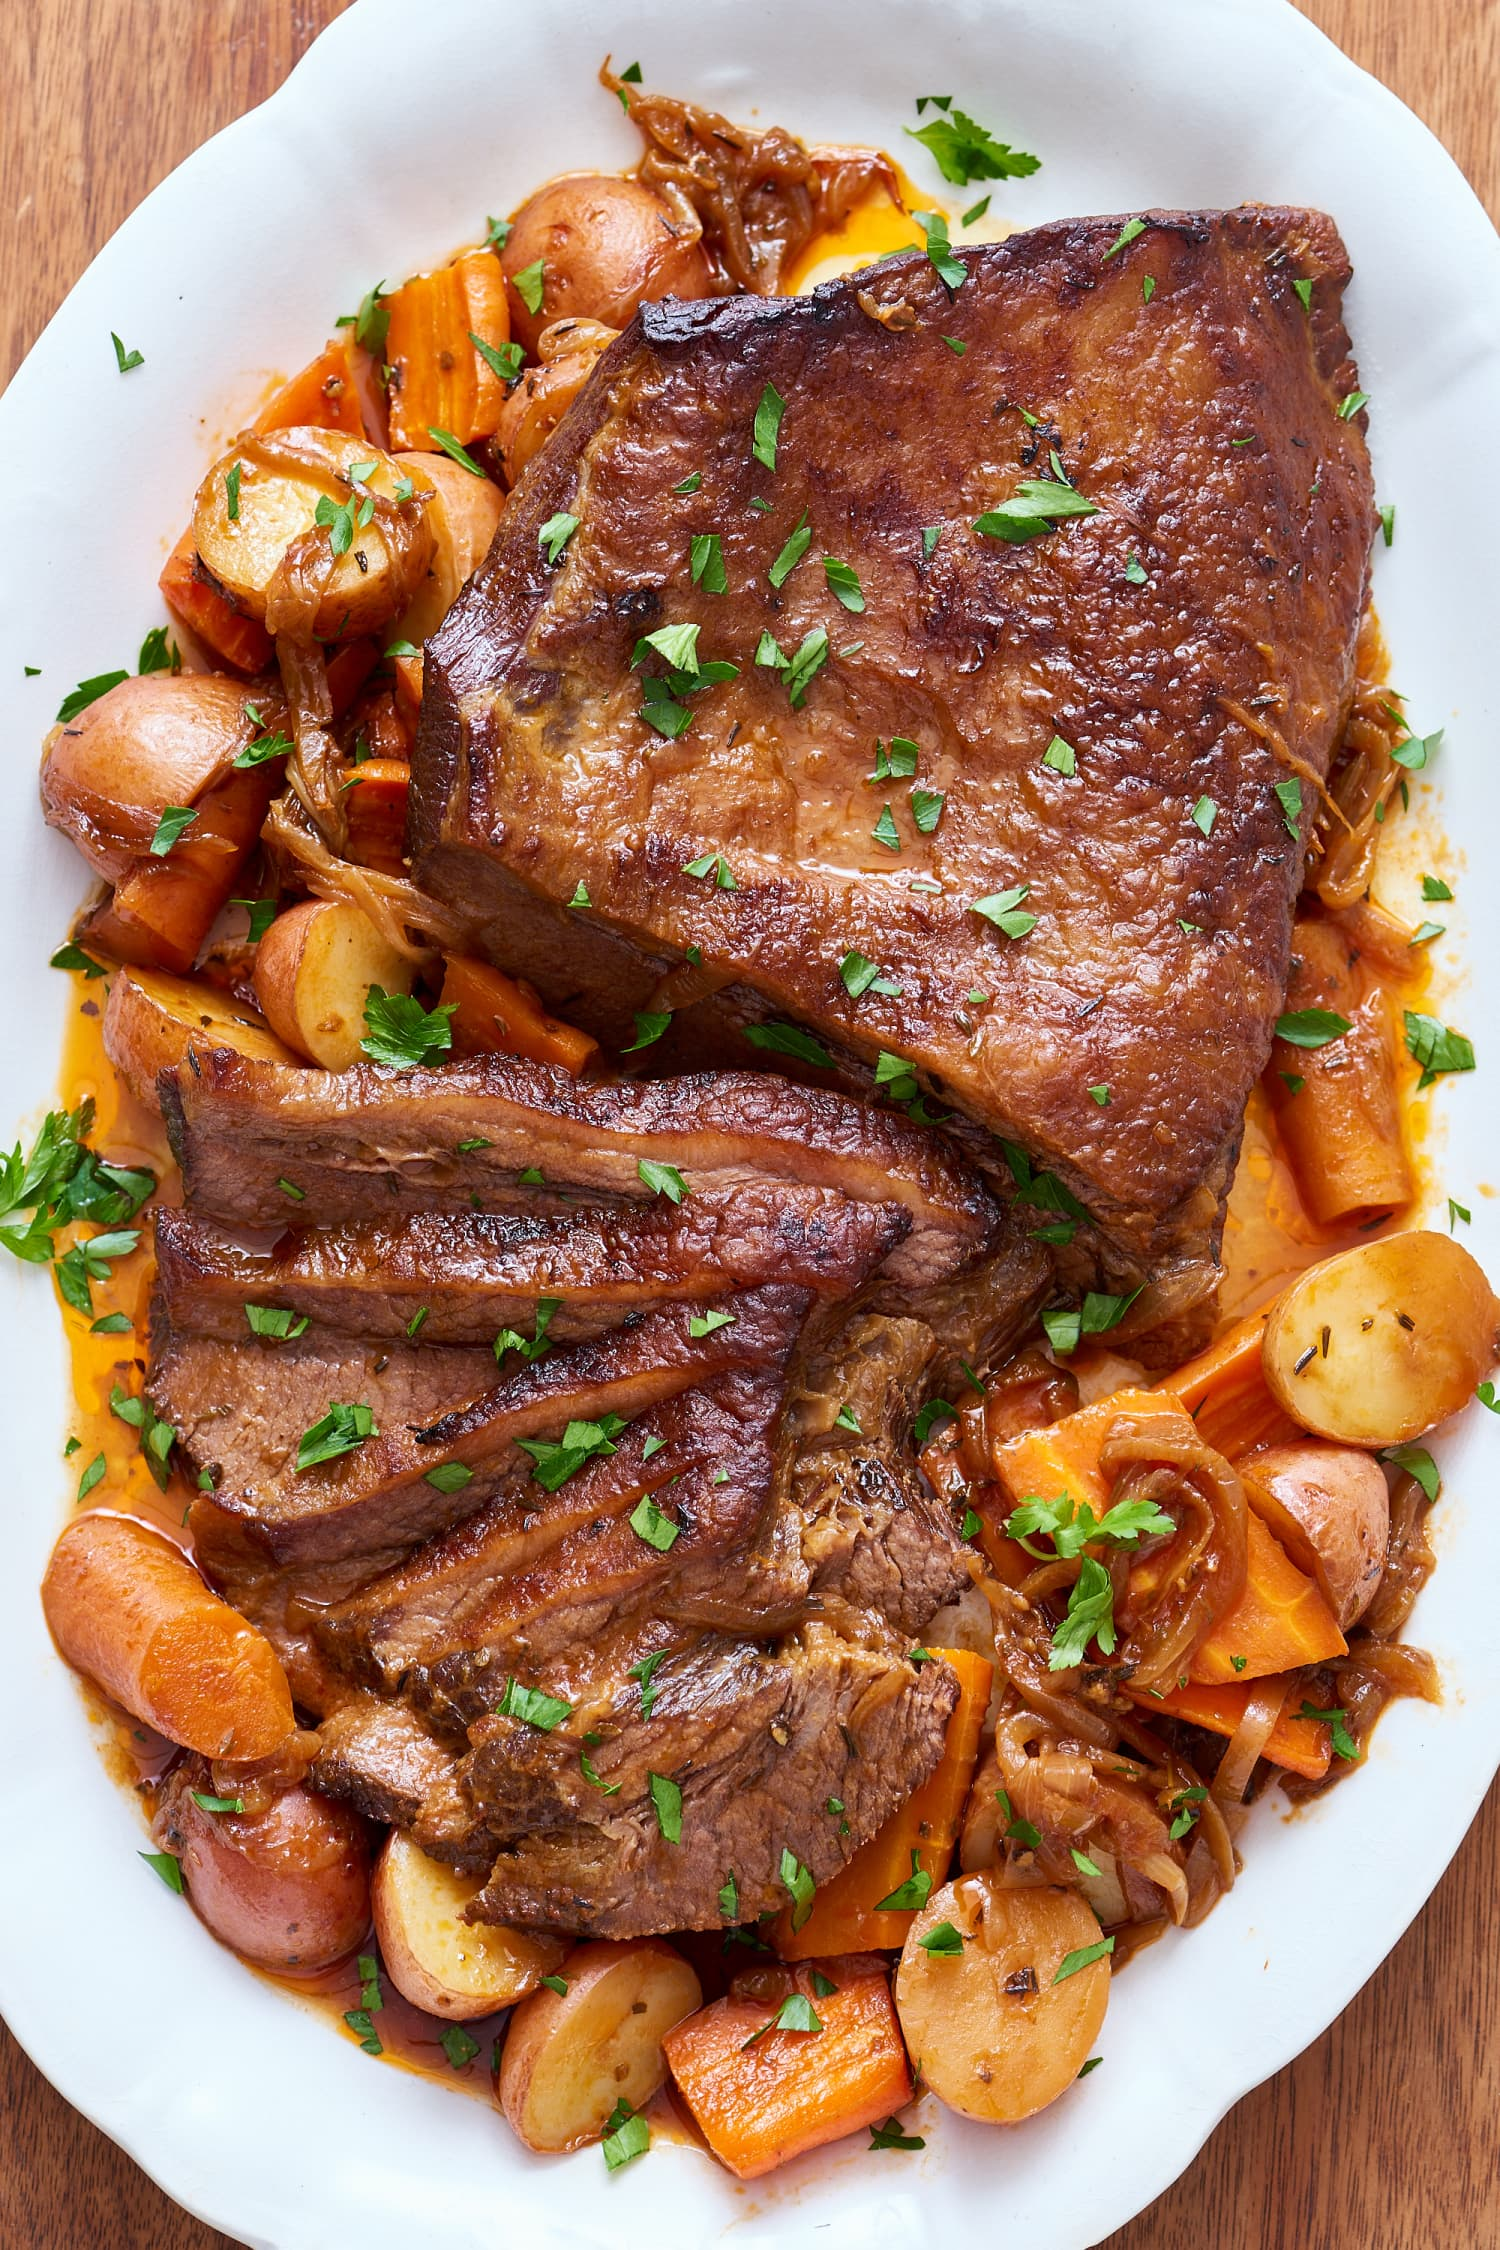 How To Cook Classic Beef Brisket in the Slow Cooker